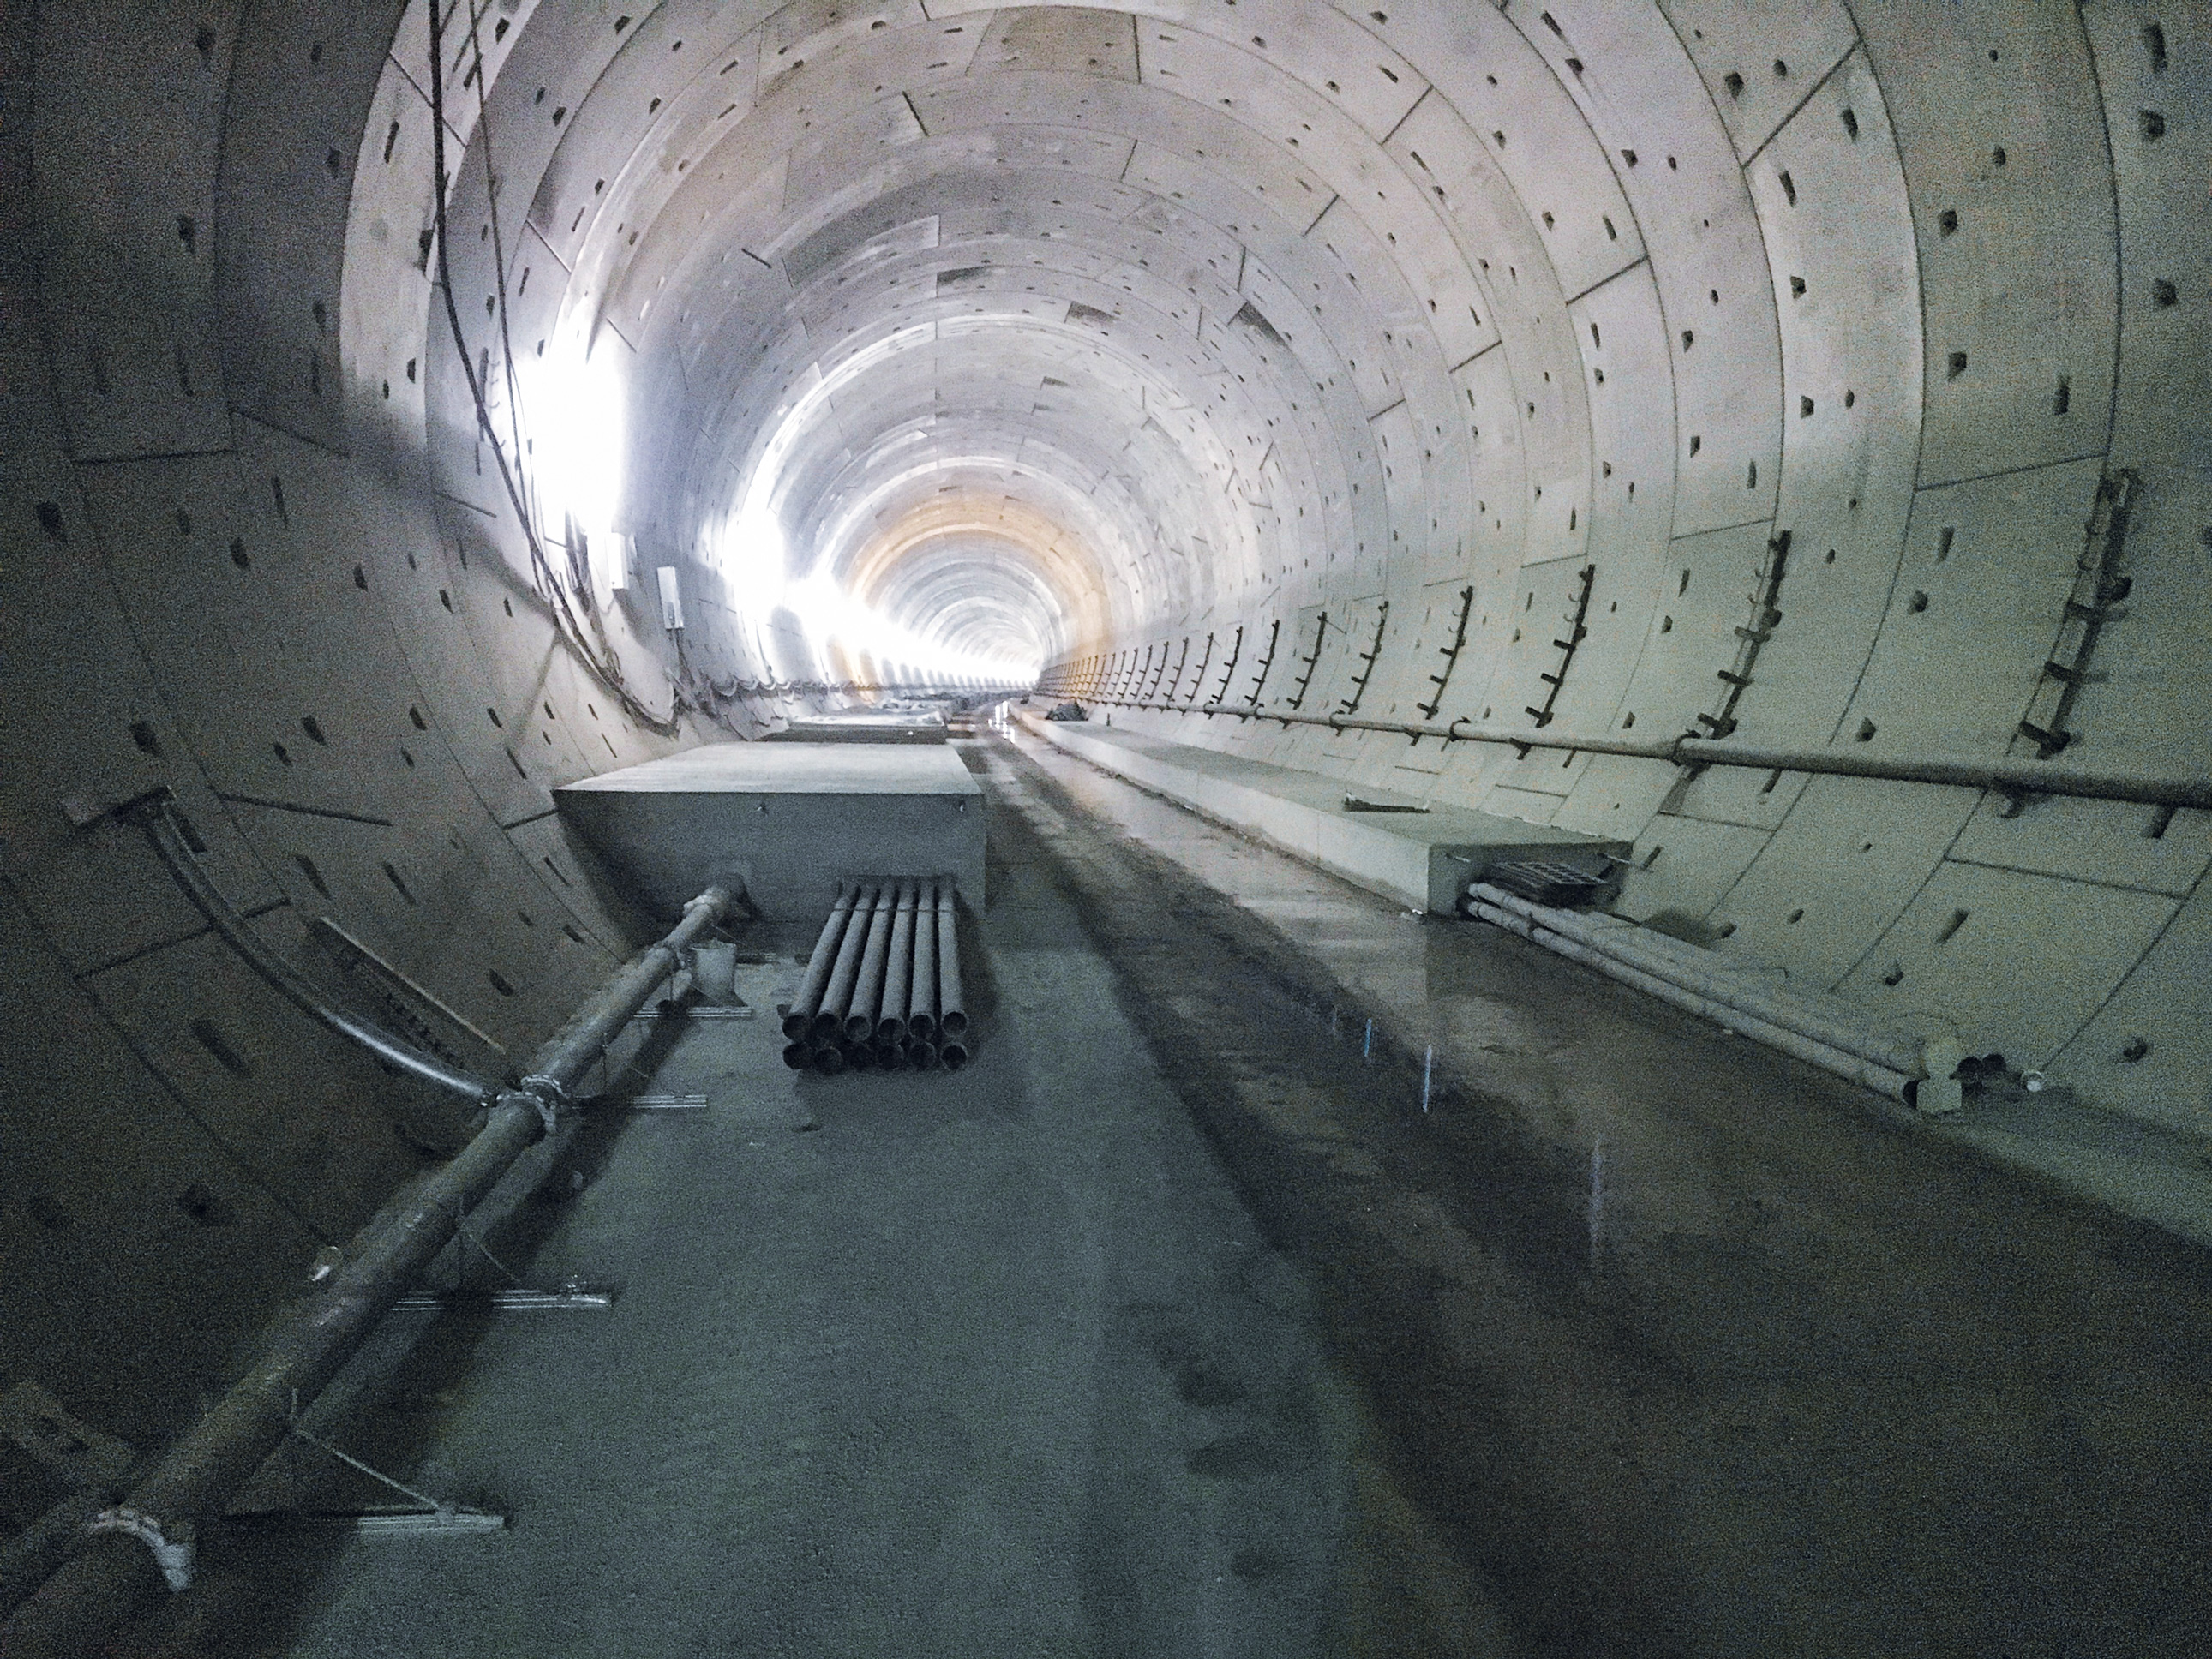 Bosslertunnel, Neubaustrecke Wendlingen-Ulm - Tunnel construction